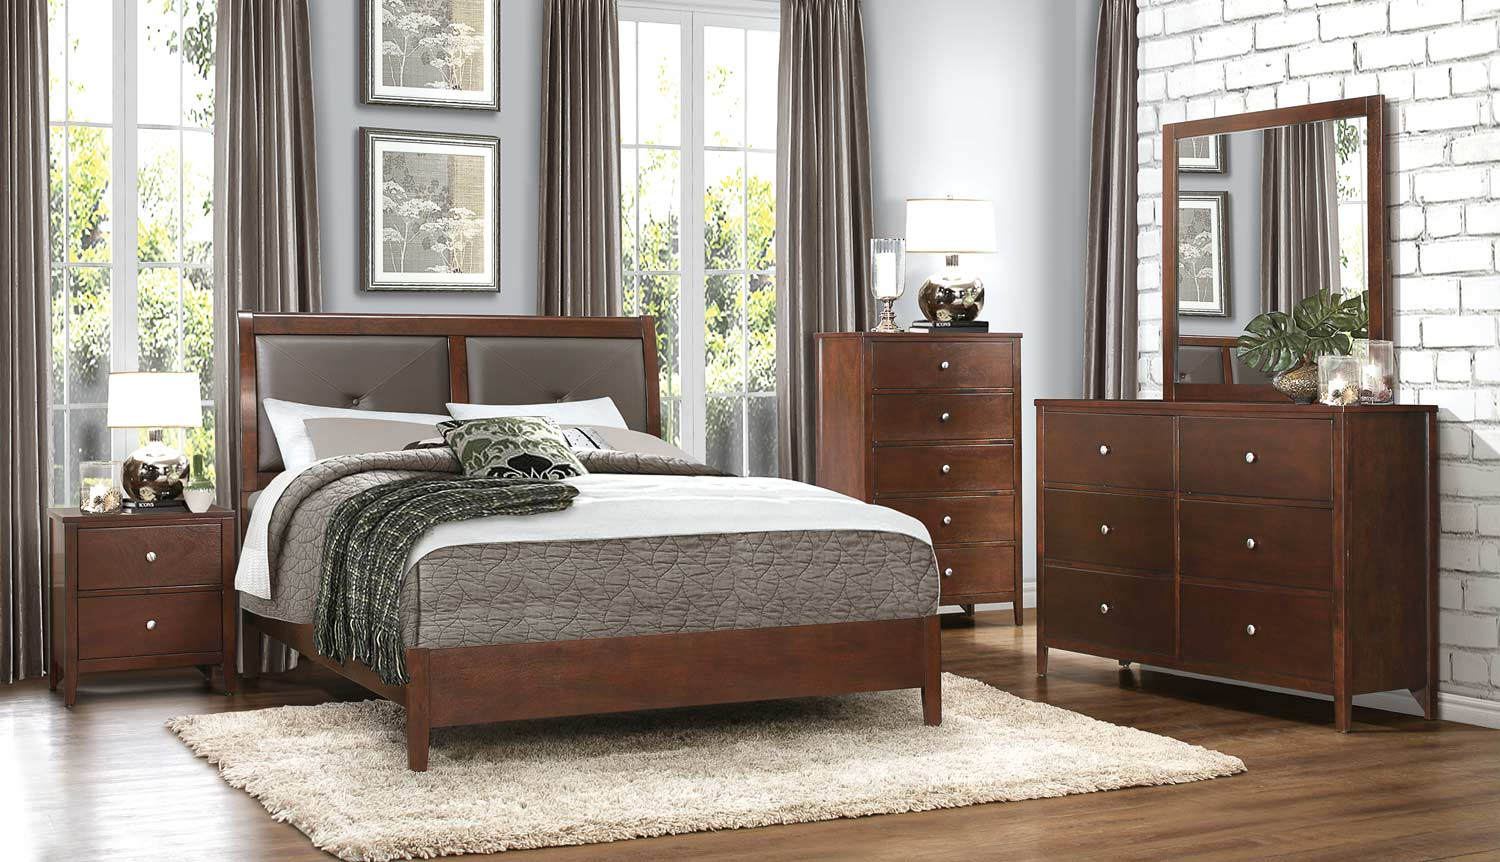 Homelegance Cullen Bedroom Set - Brown Cherry